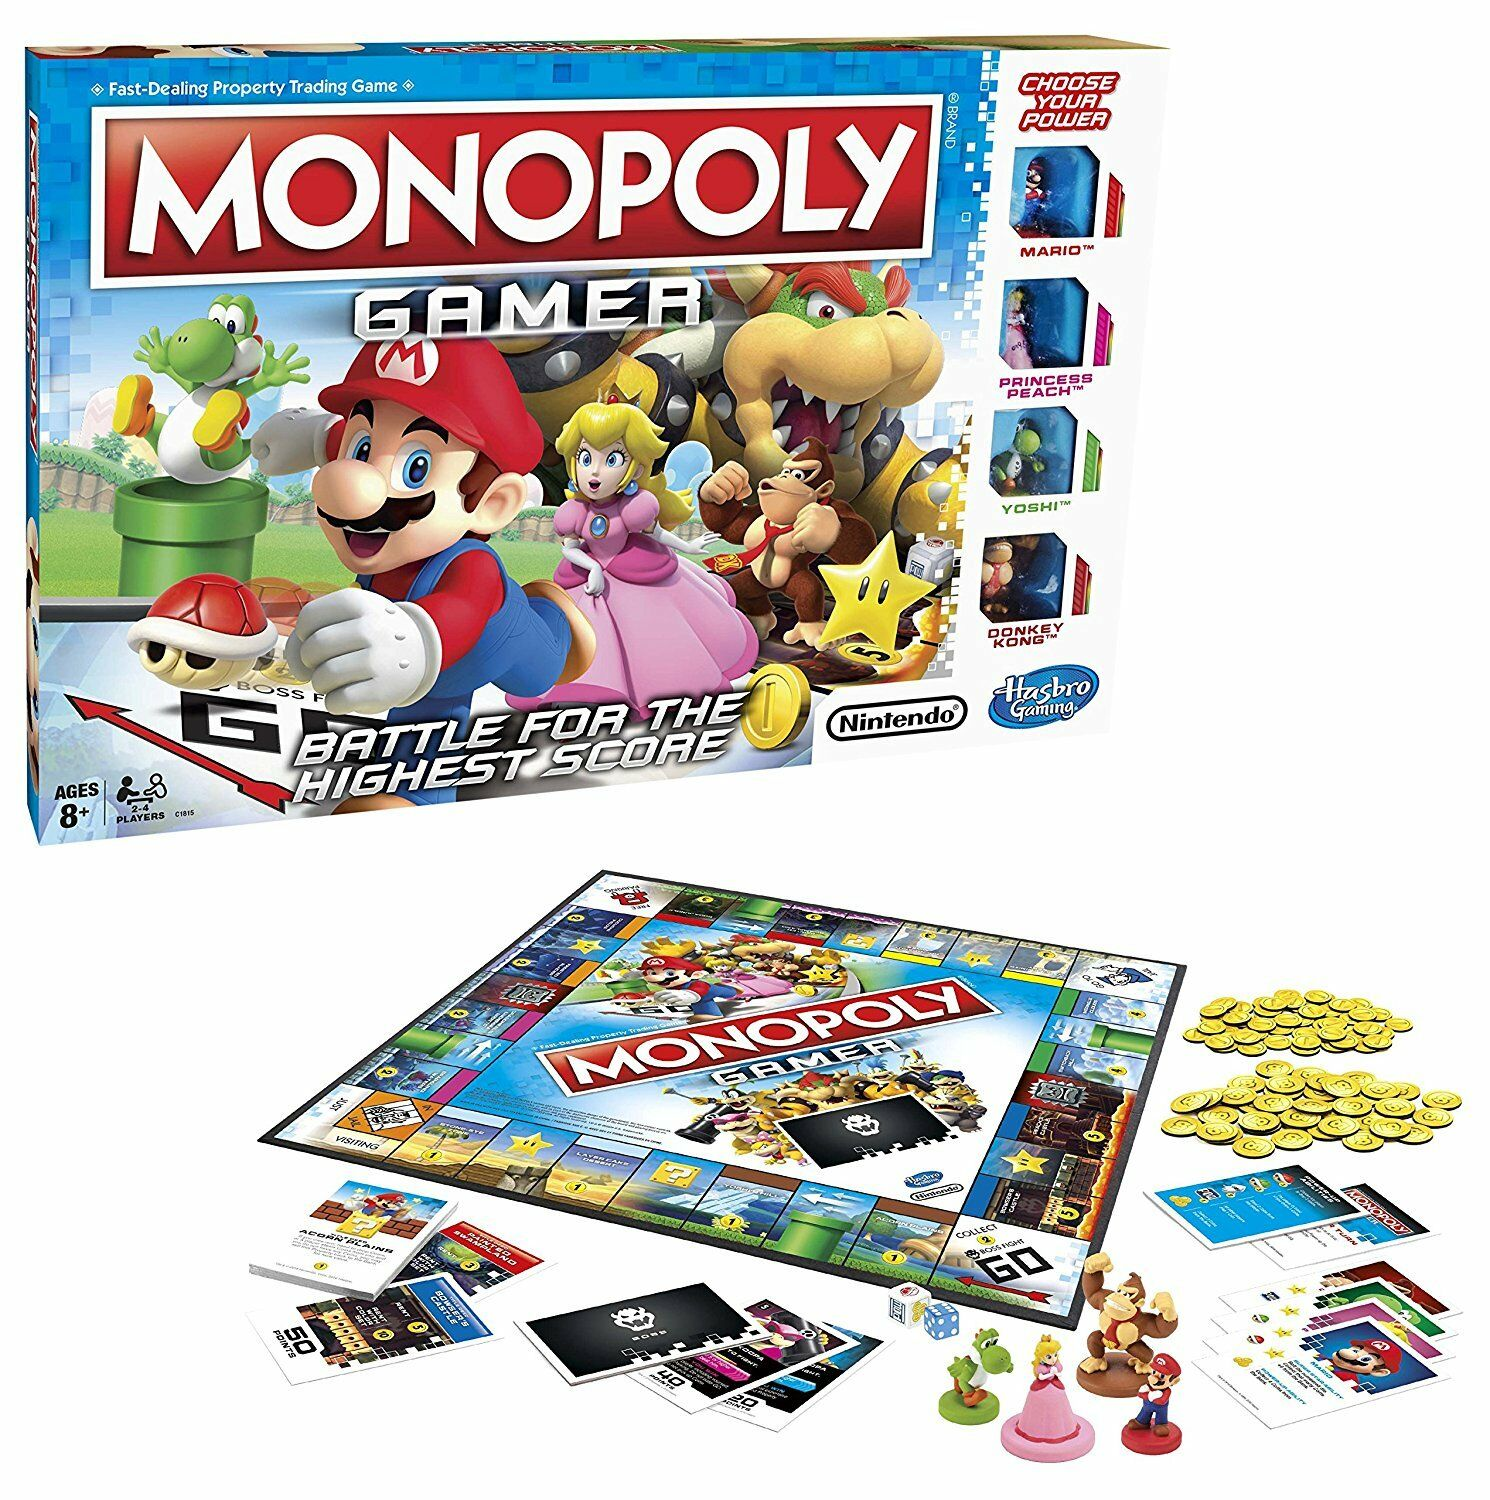 MONOPOLY GAMER SUPER MARIO BROS